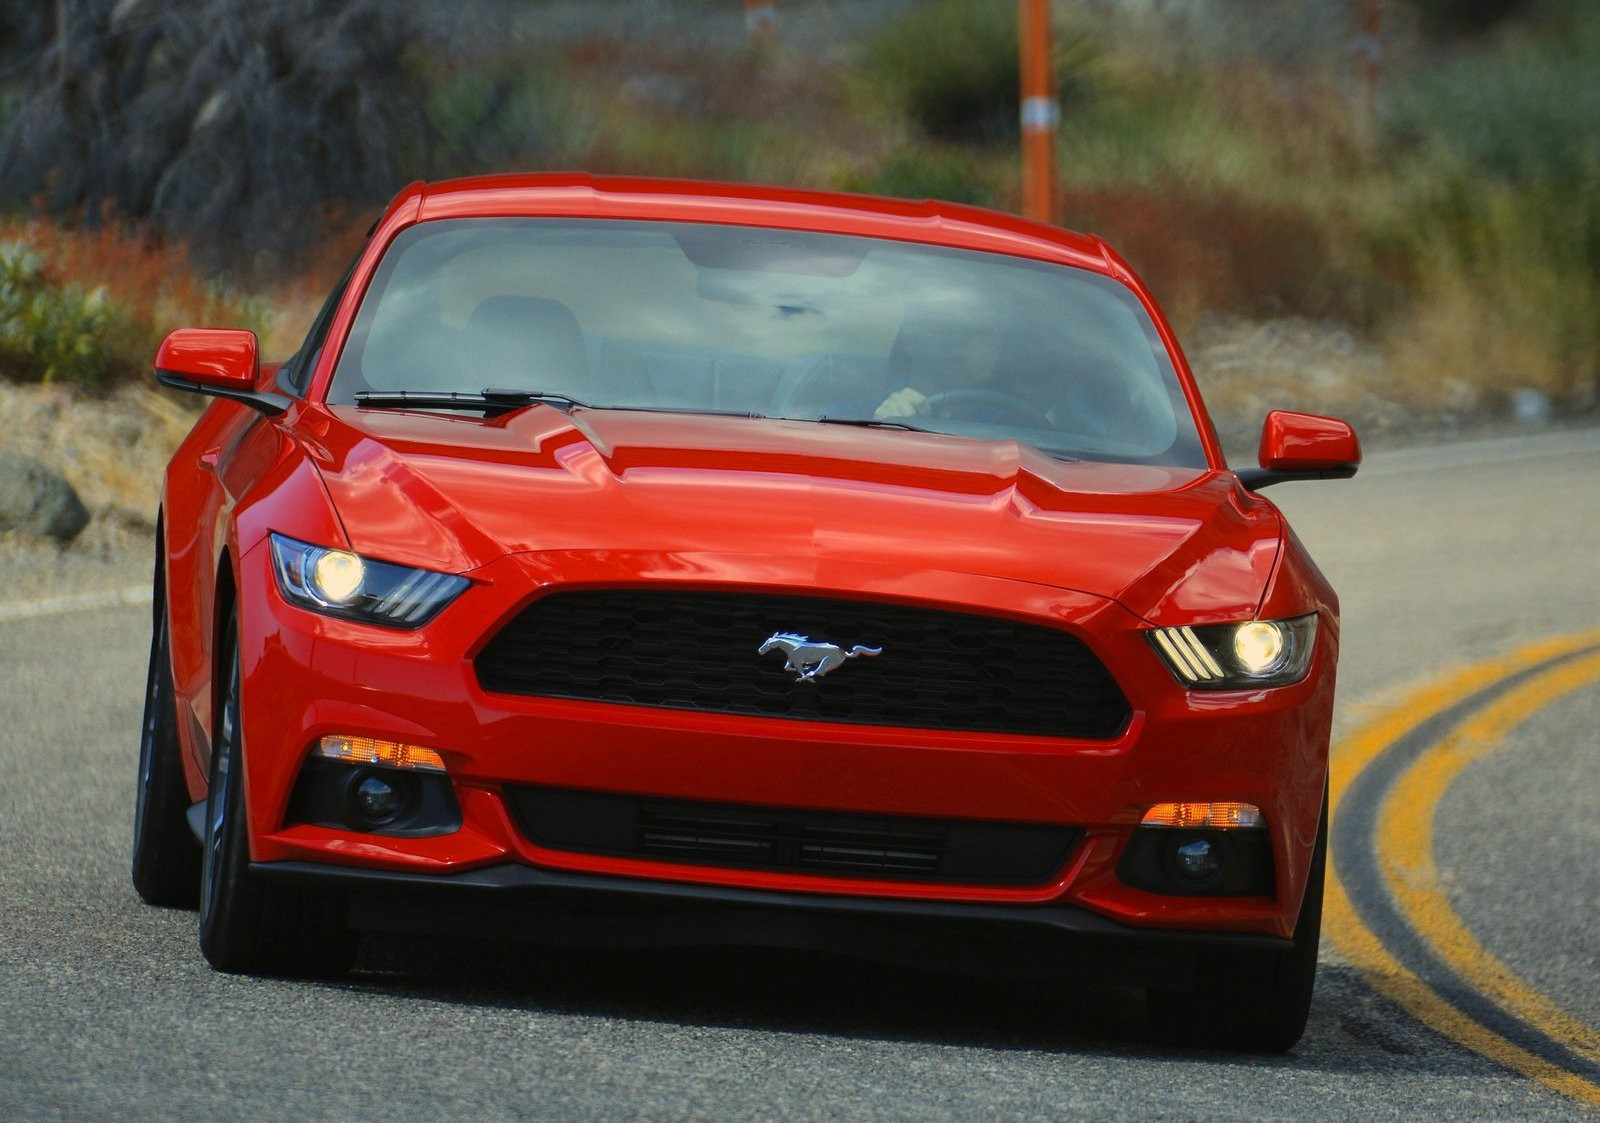 2015 Mustang Specs For 2 3 Eco Autos Post